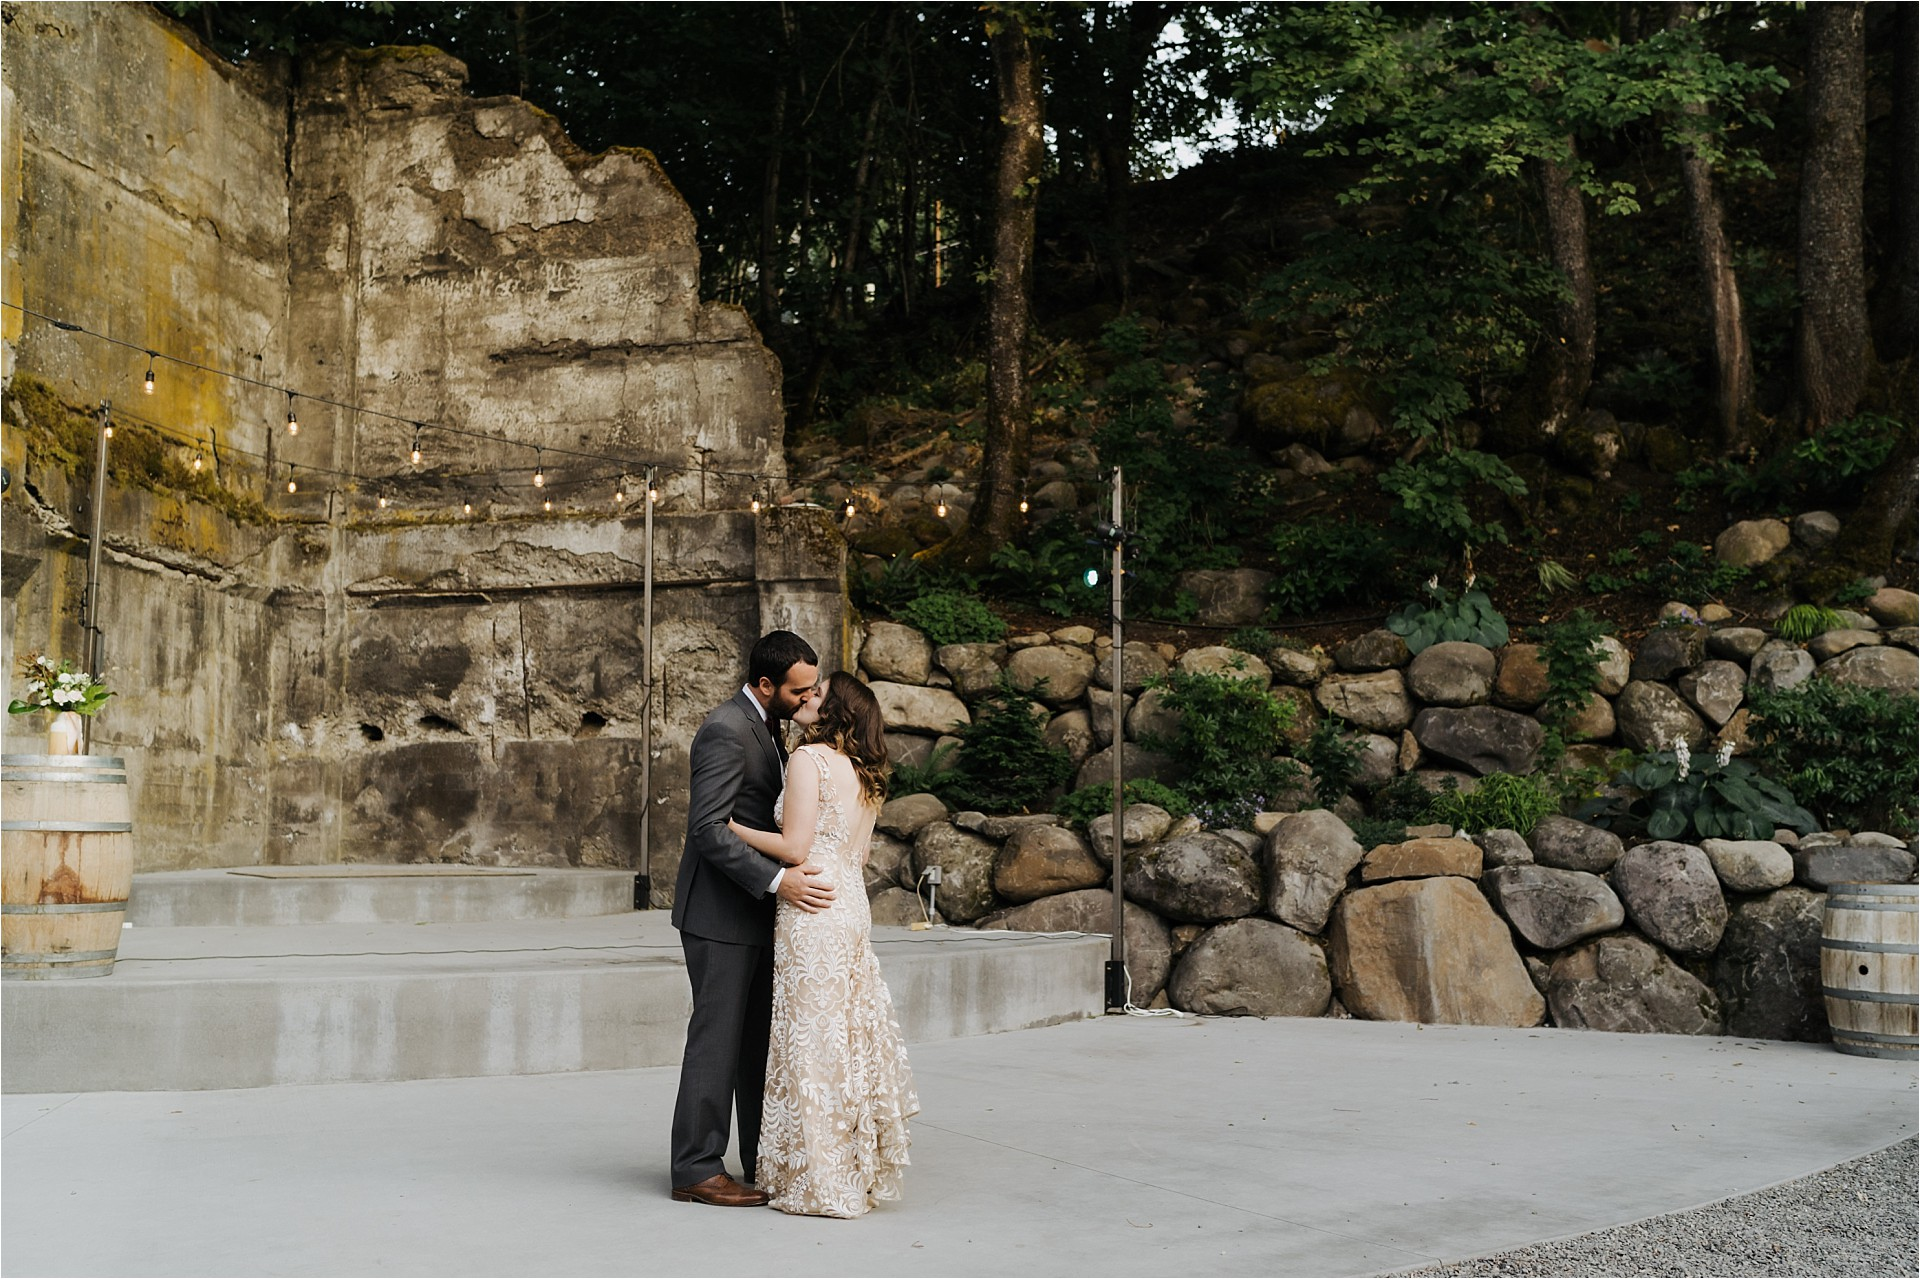 Bride and groom sharing first dance at The Ruins wedding